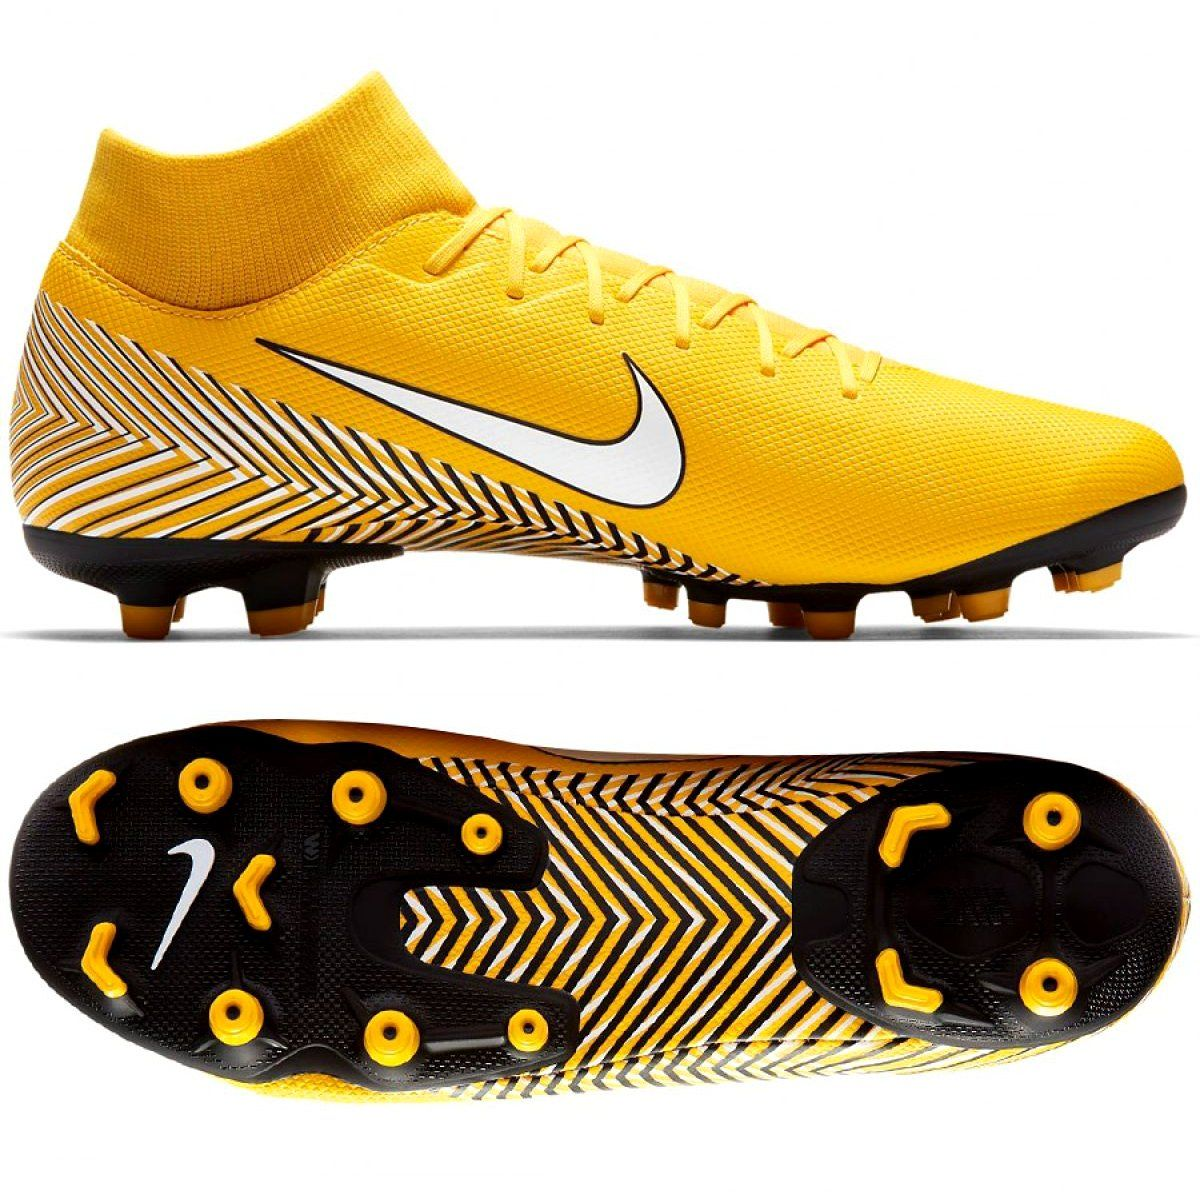 Nike Mercurial Neymar Superfly 6 Academy Mg M Ao9466 710 Yellow Multicolored Nike Soccer Shoes Mens Football Boots Football Shoes